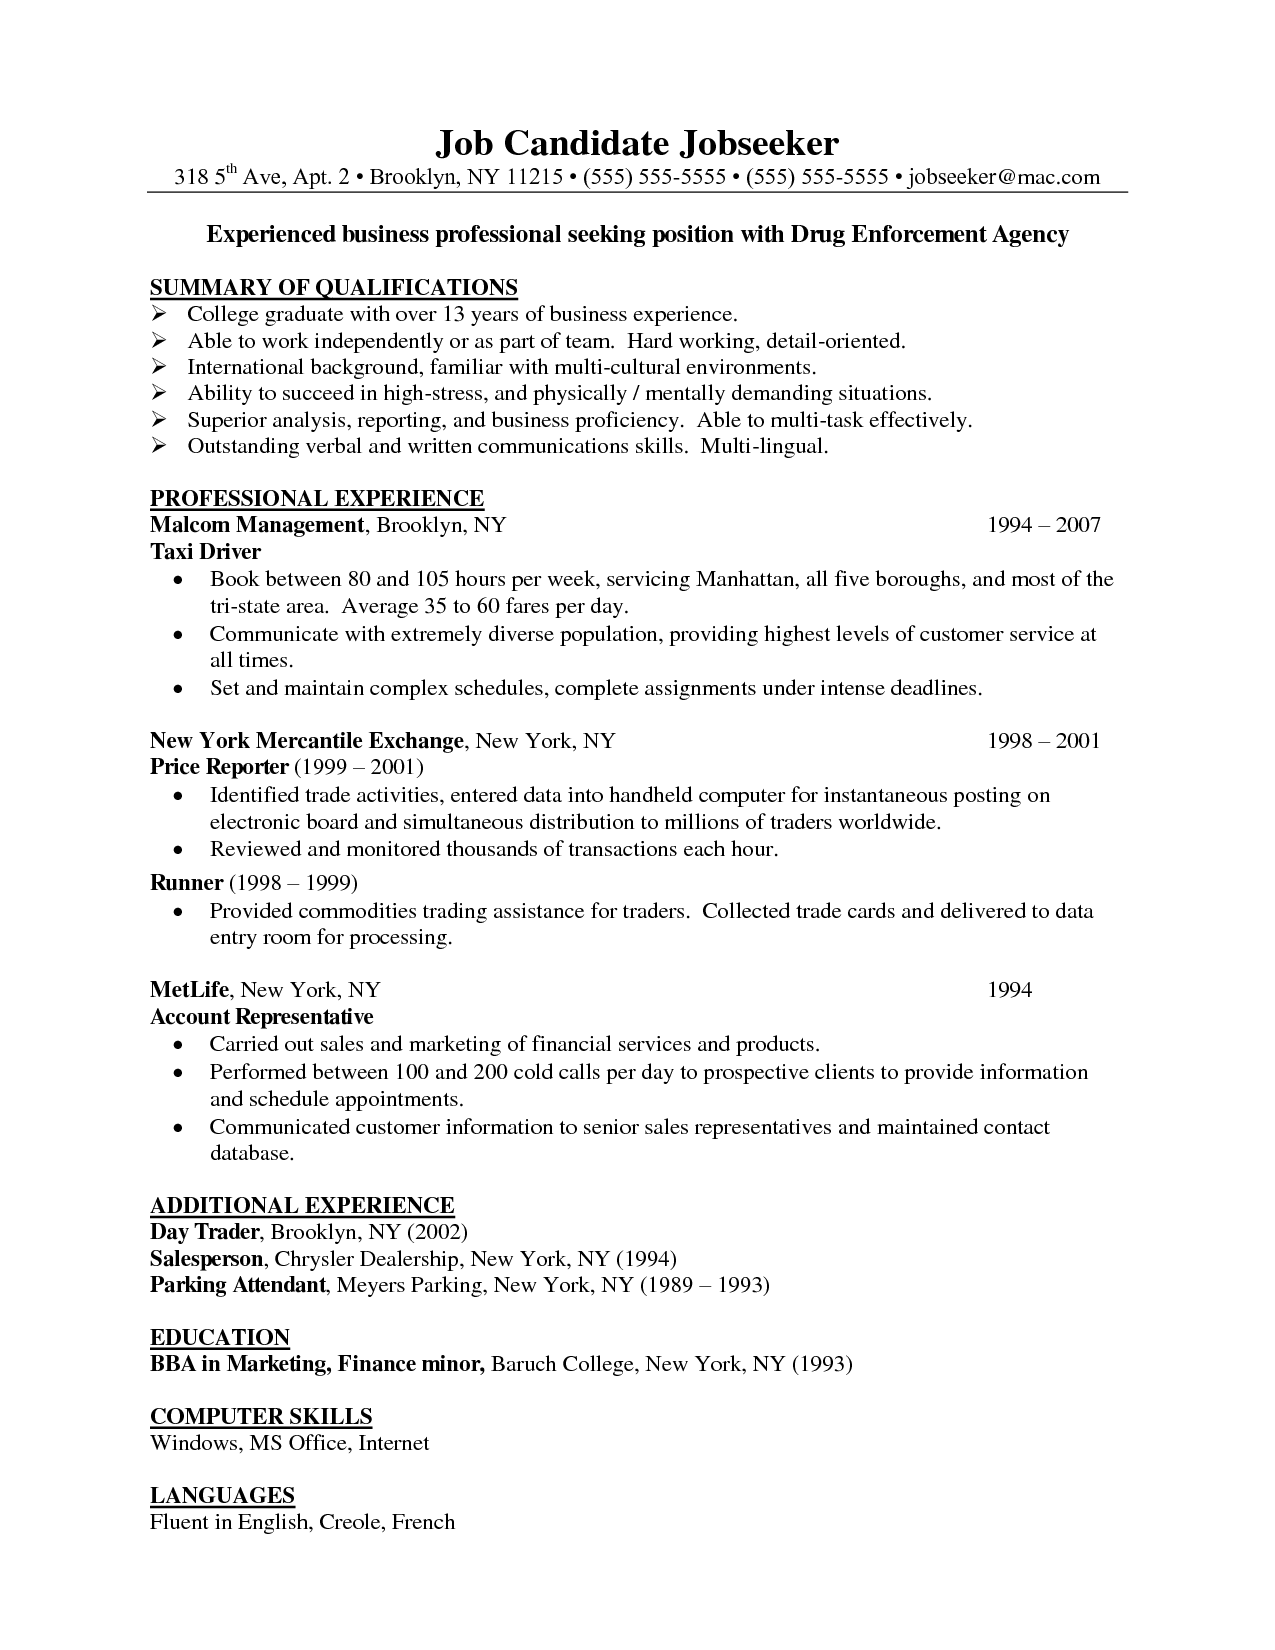 Business Resumes Template Sample Business Resume Template  Sample Resume Center  Pinterest